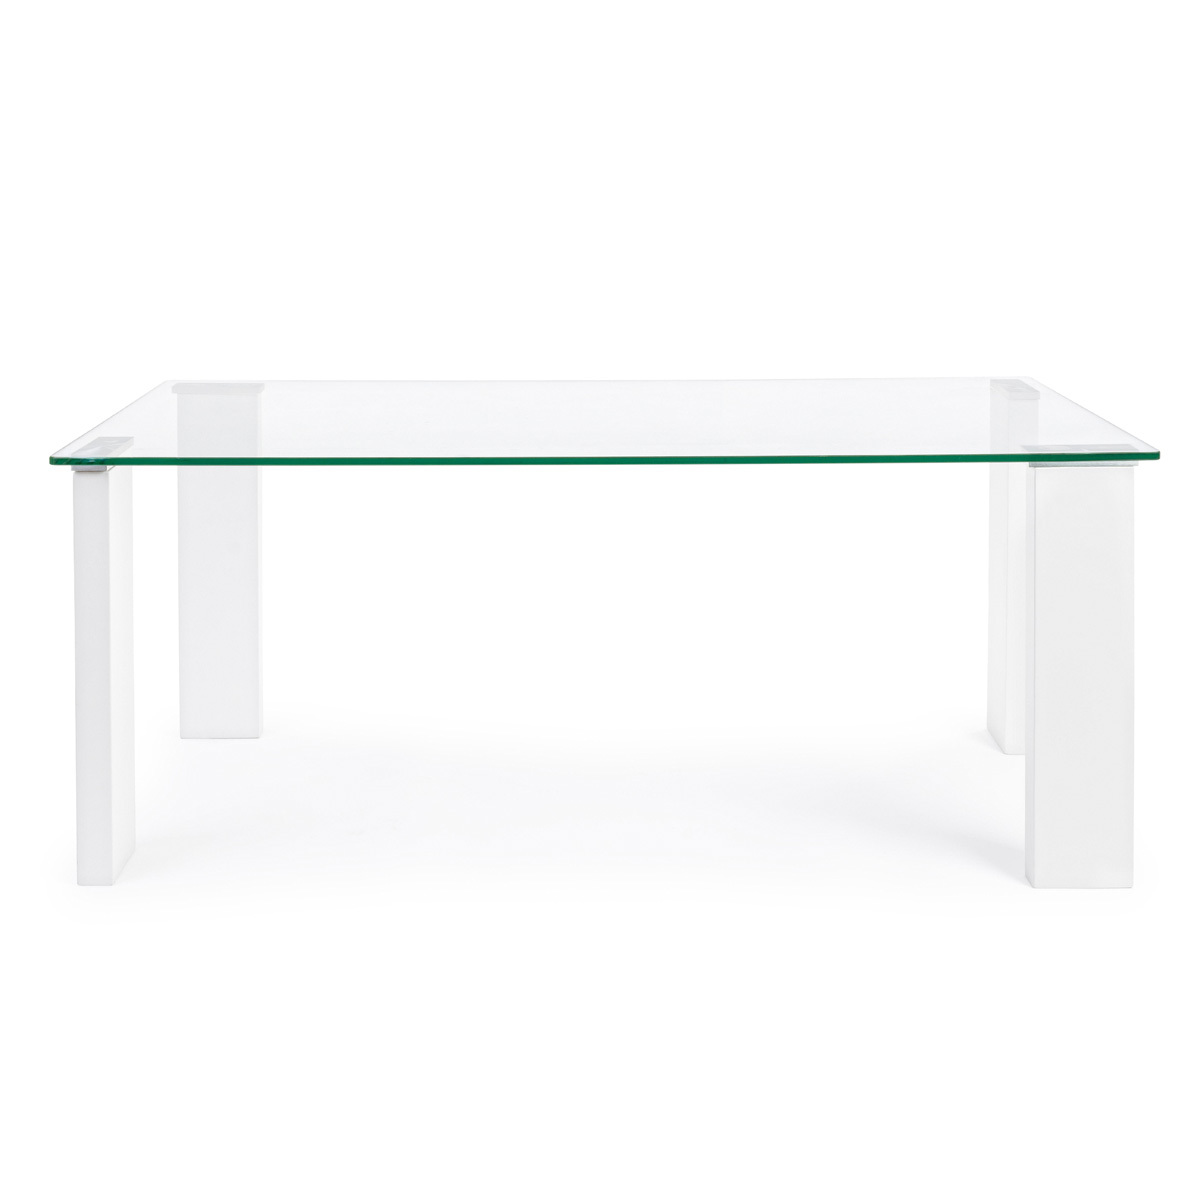 Photos 2: Bizzotto Rectangular table in glass l. 120 x 60 0731963